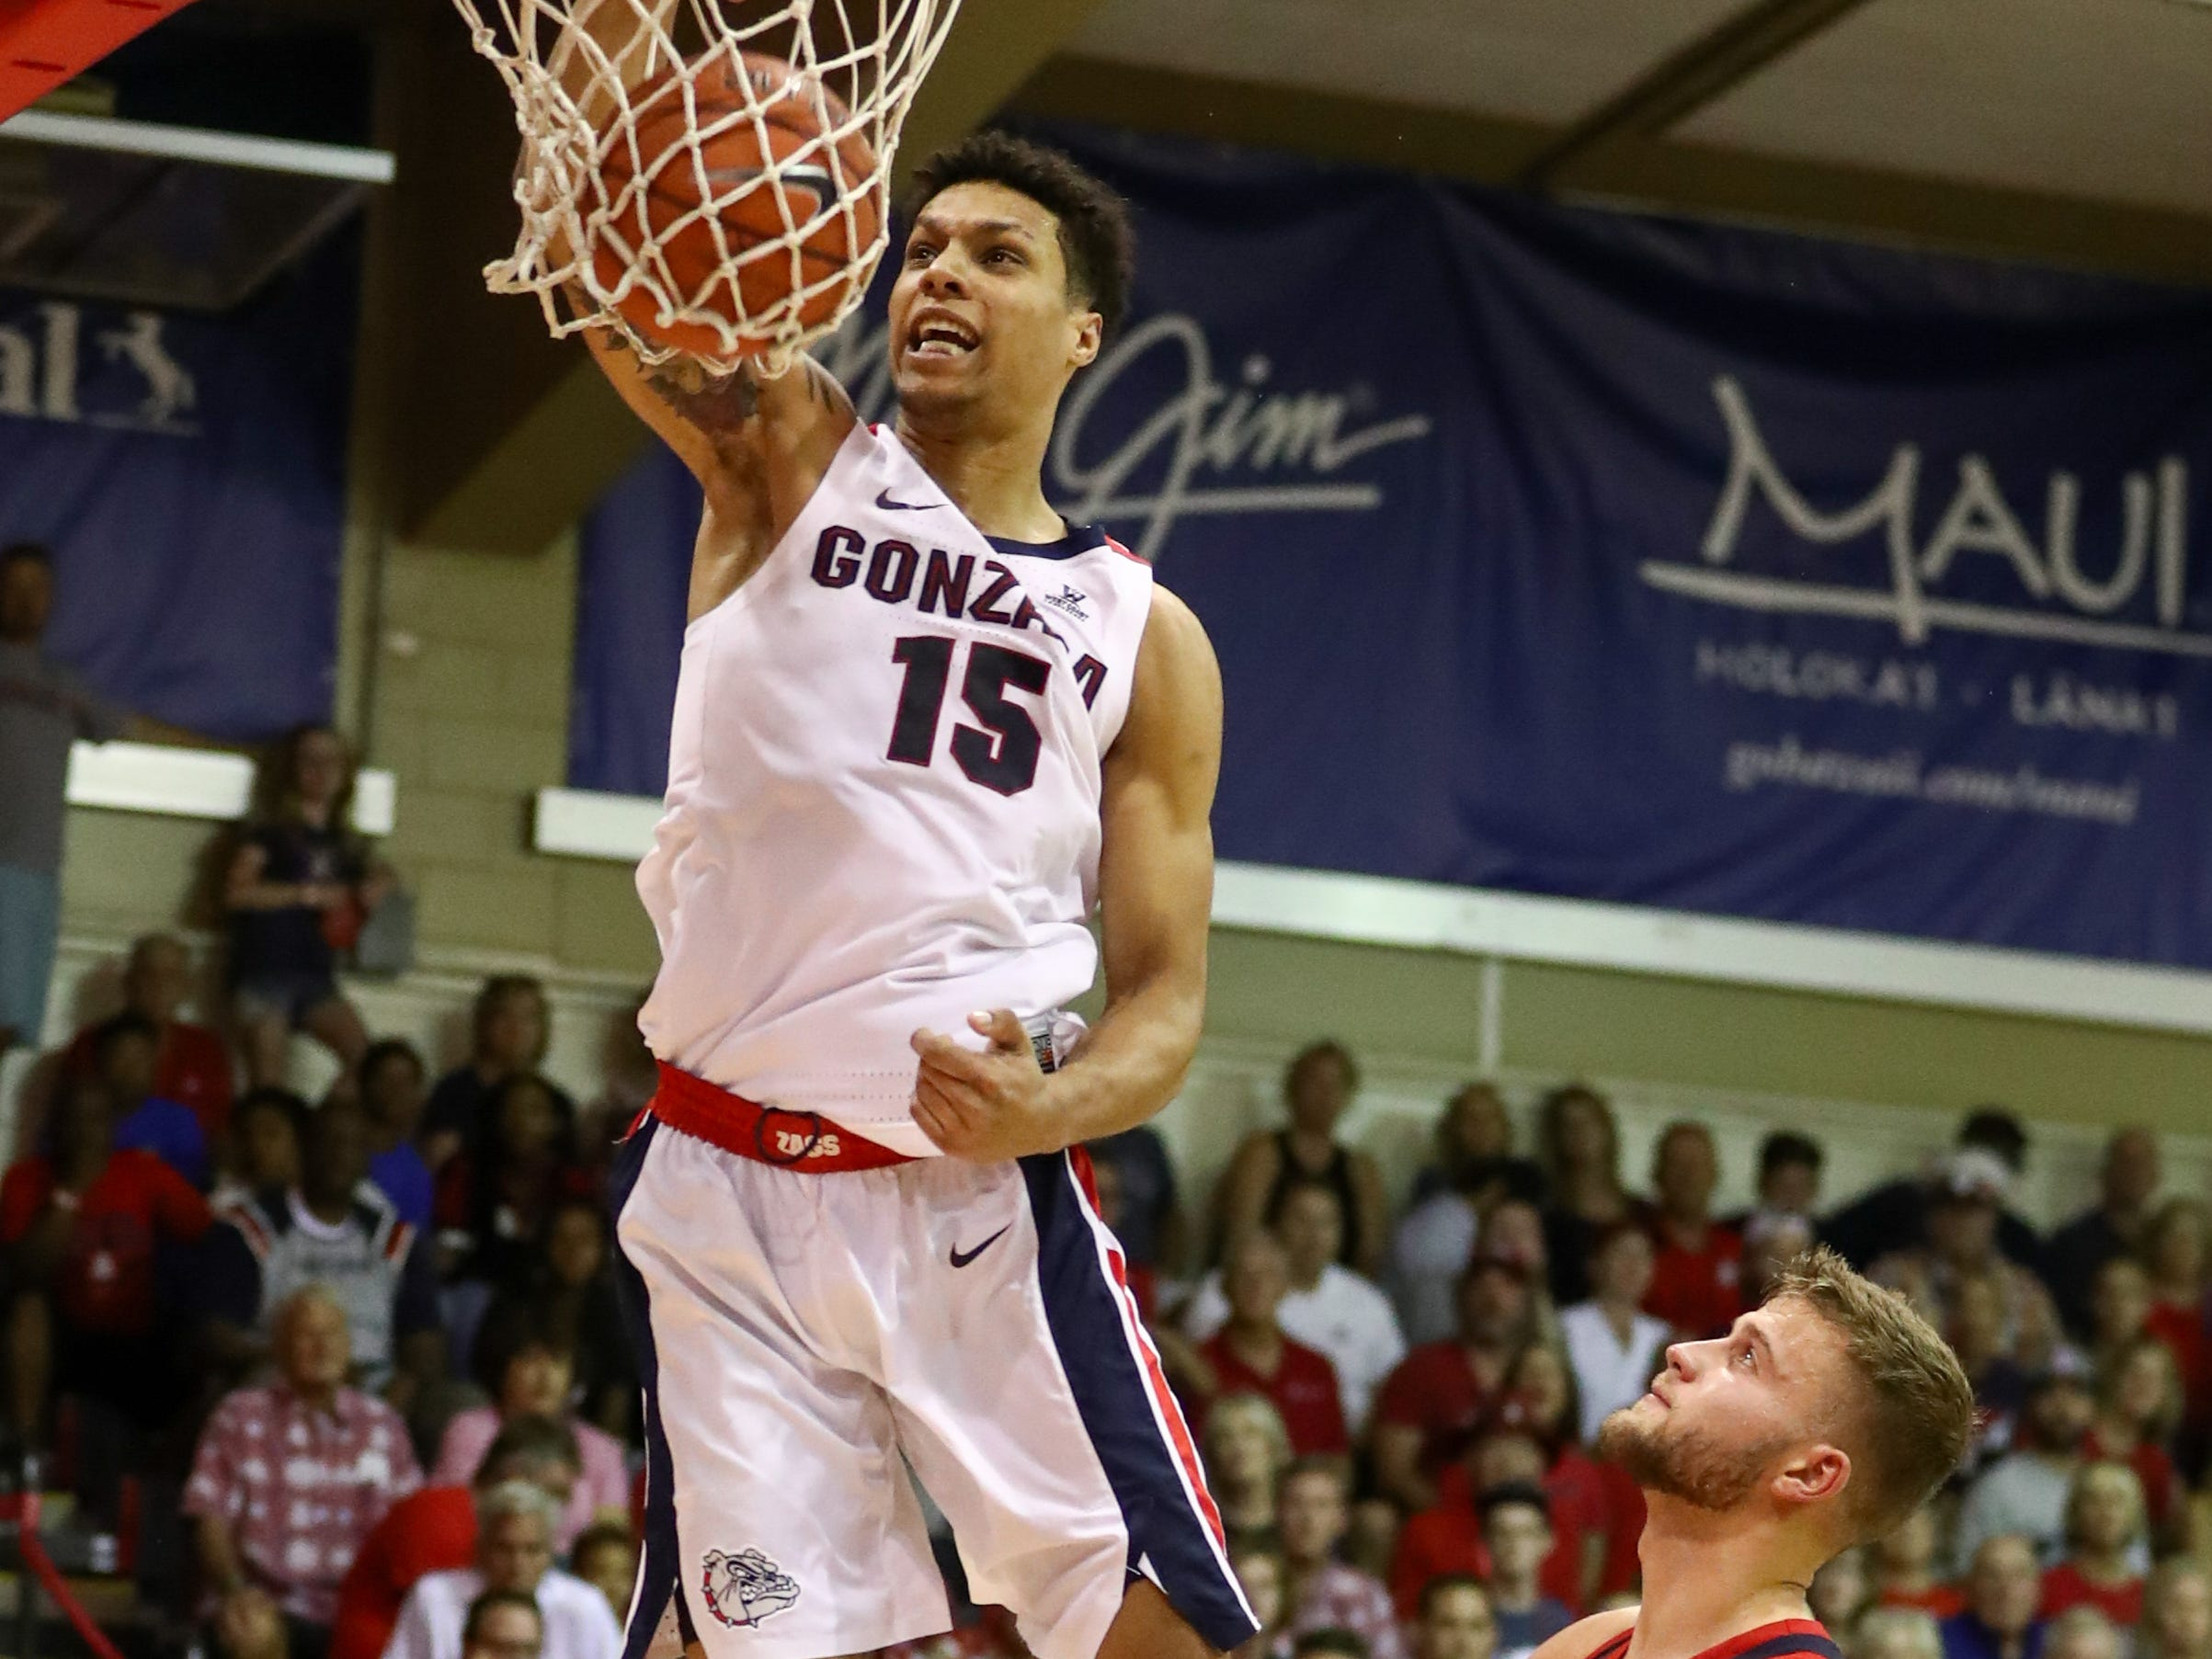 Ryan Luther #10 of the Arizona Wildcats looks on as Brandon Clarke #15 of the Gonzaga Bulldogs throws down a dunk during the first half of the game at the Lahaina Civic Center on November 20, 2018 in Lahaina, Hawaii.